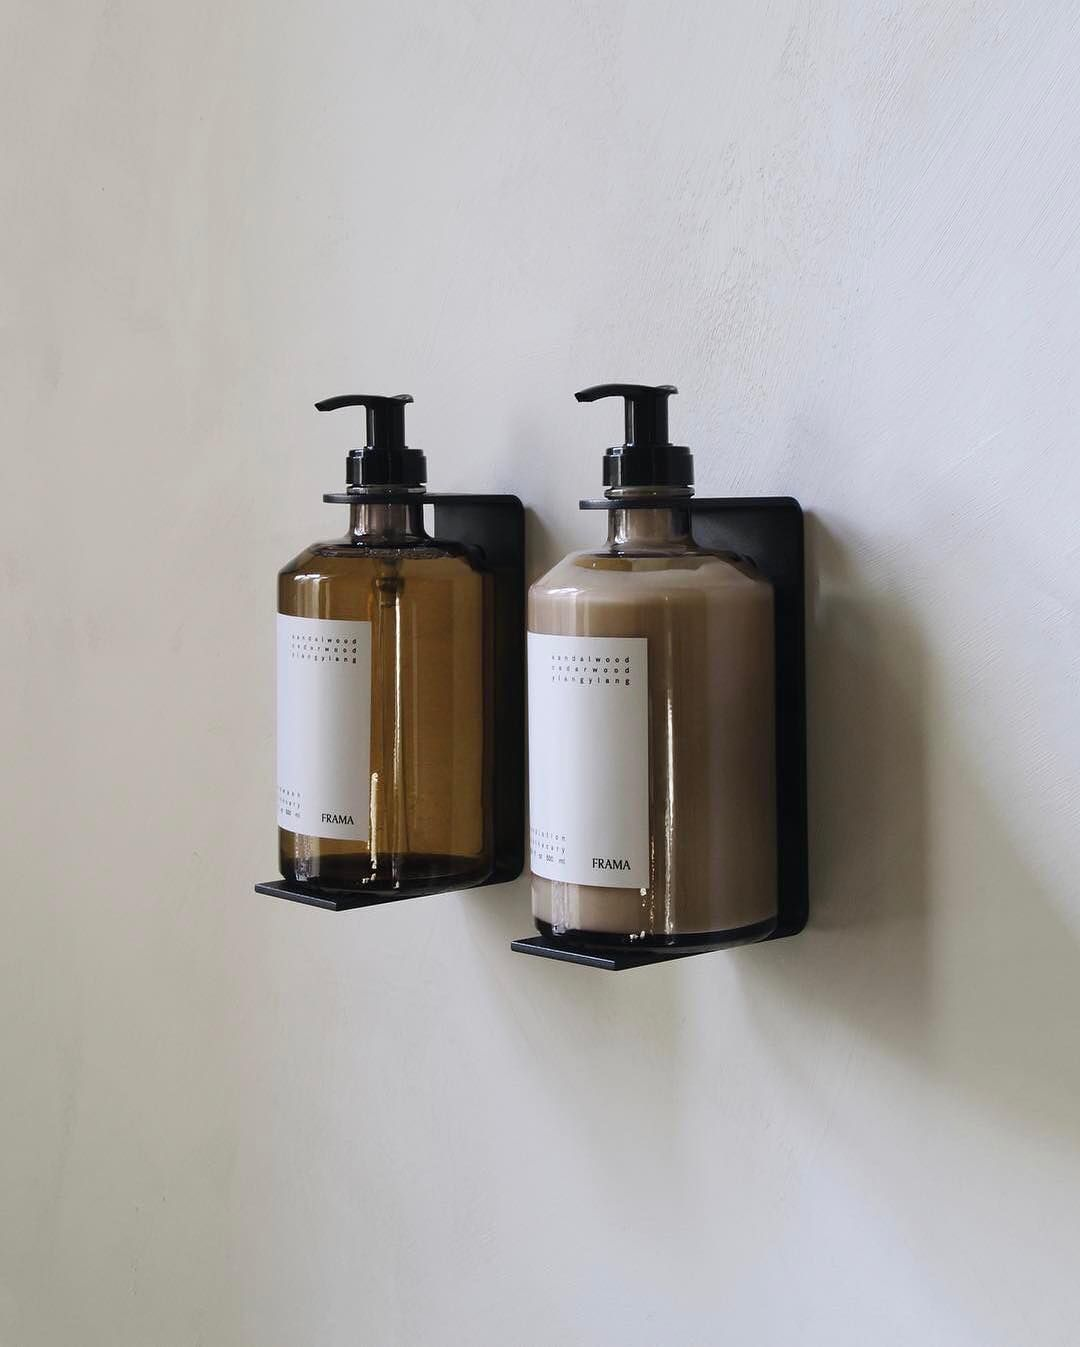 4 177 Likes 29 Comments Frama Framacph On Instagram Back In Stock Apothecary Hand Wash Wall Dis Bathroom Storage Small Bathroom Small Space Bathroom